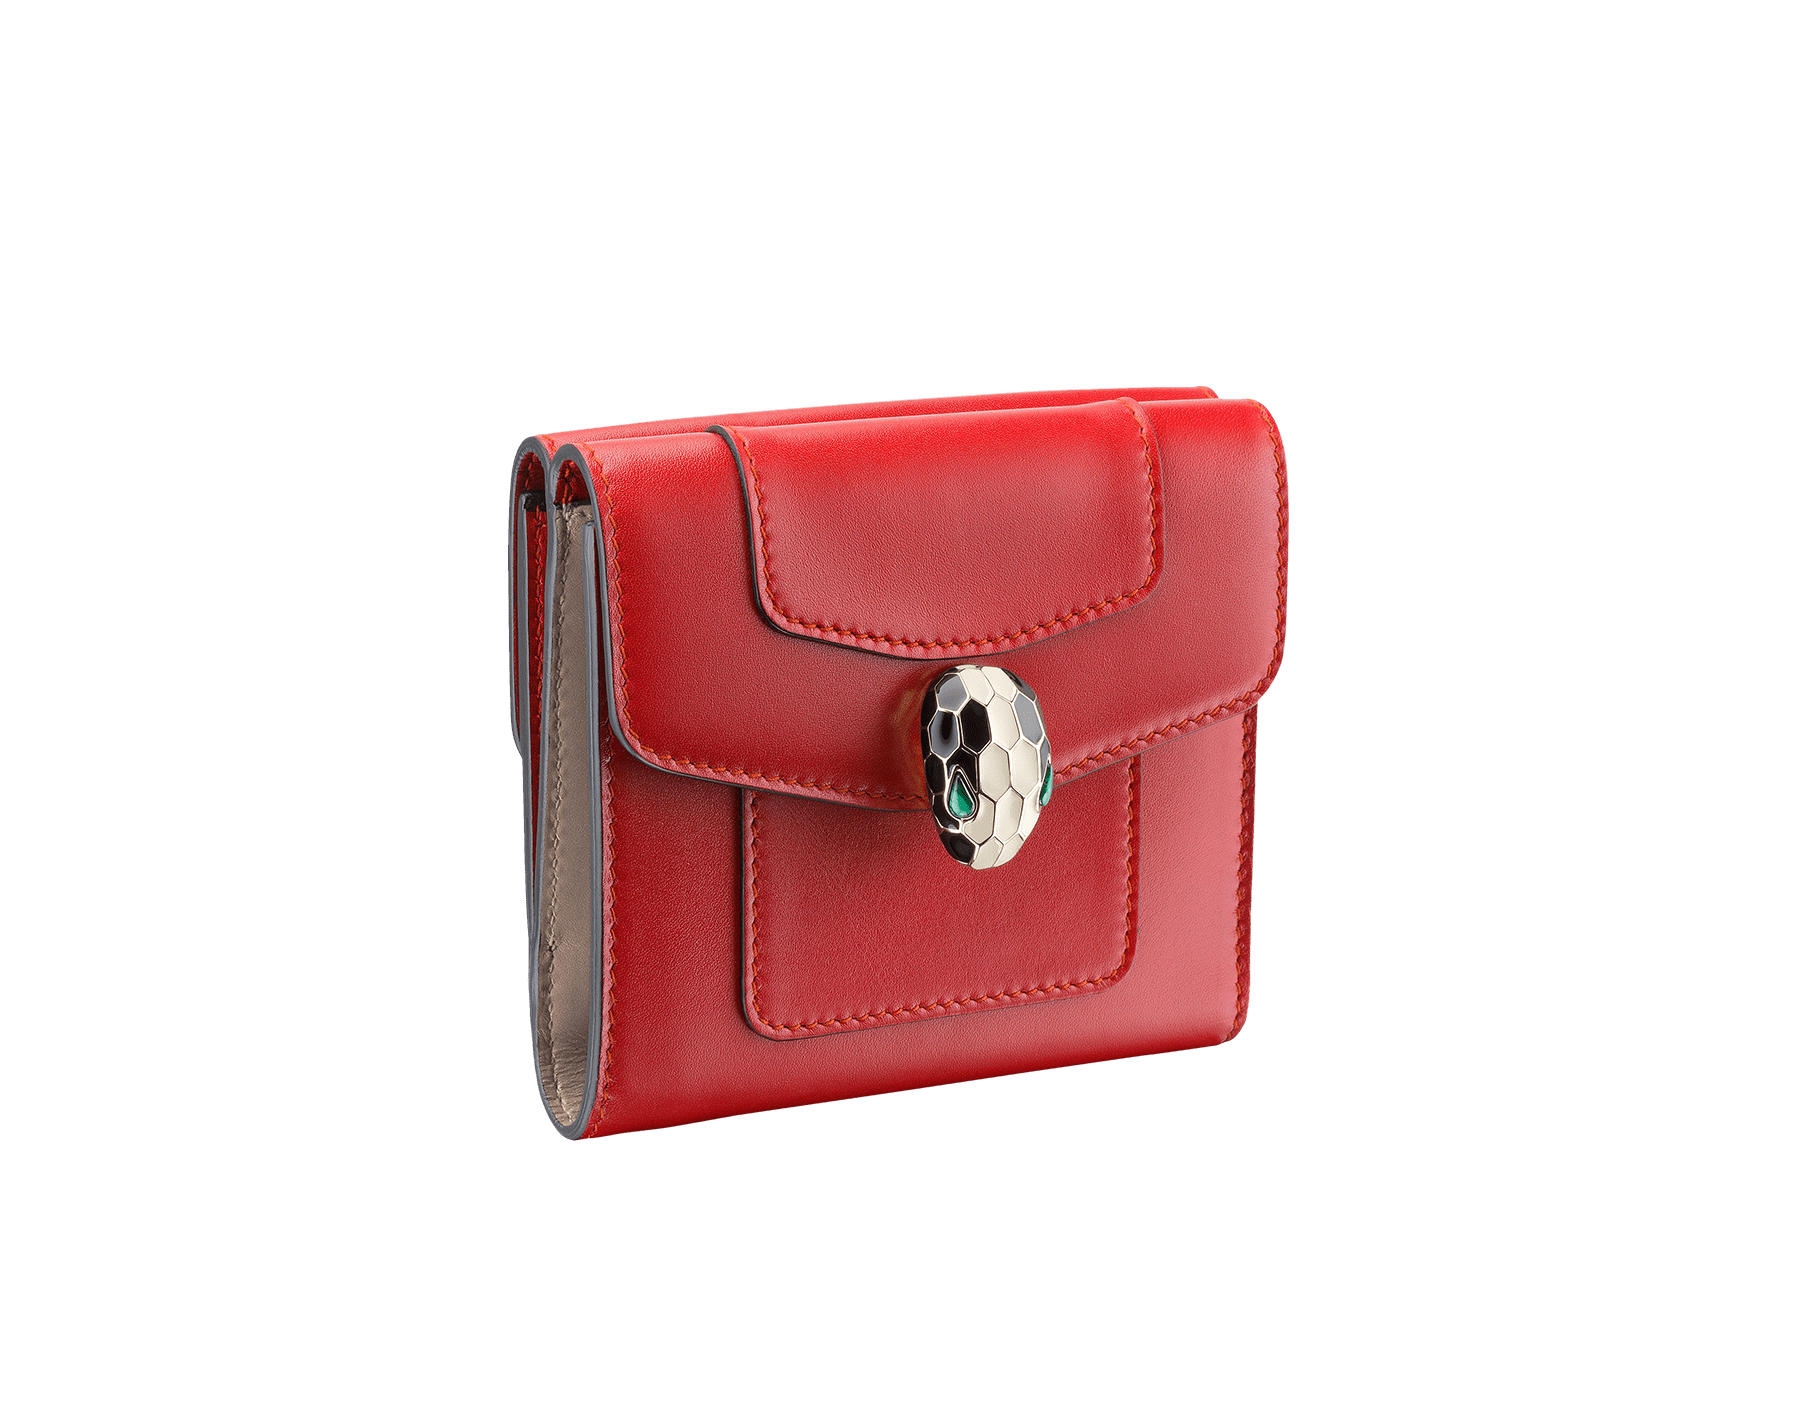 Square compact wallet in ruby red calf leather and desert quartz calf leather. Brass light gold plated hardware. Serpenti head stud closure in black and white enamel with eyes in green malachite. 281383 image 1